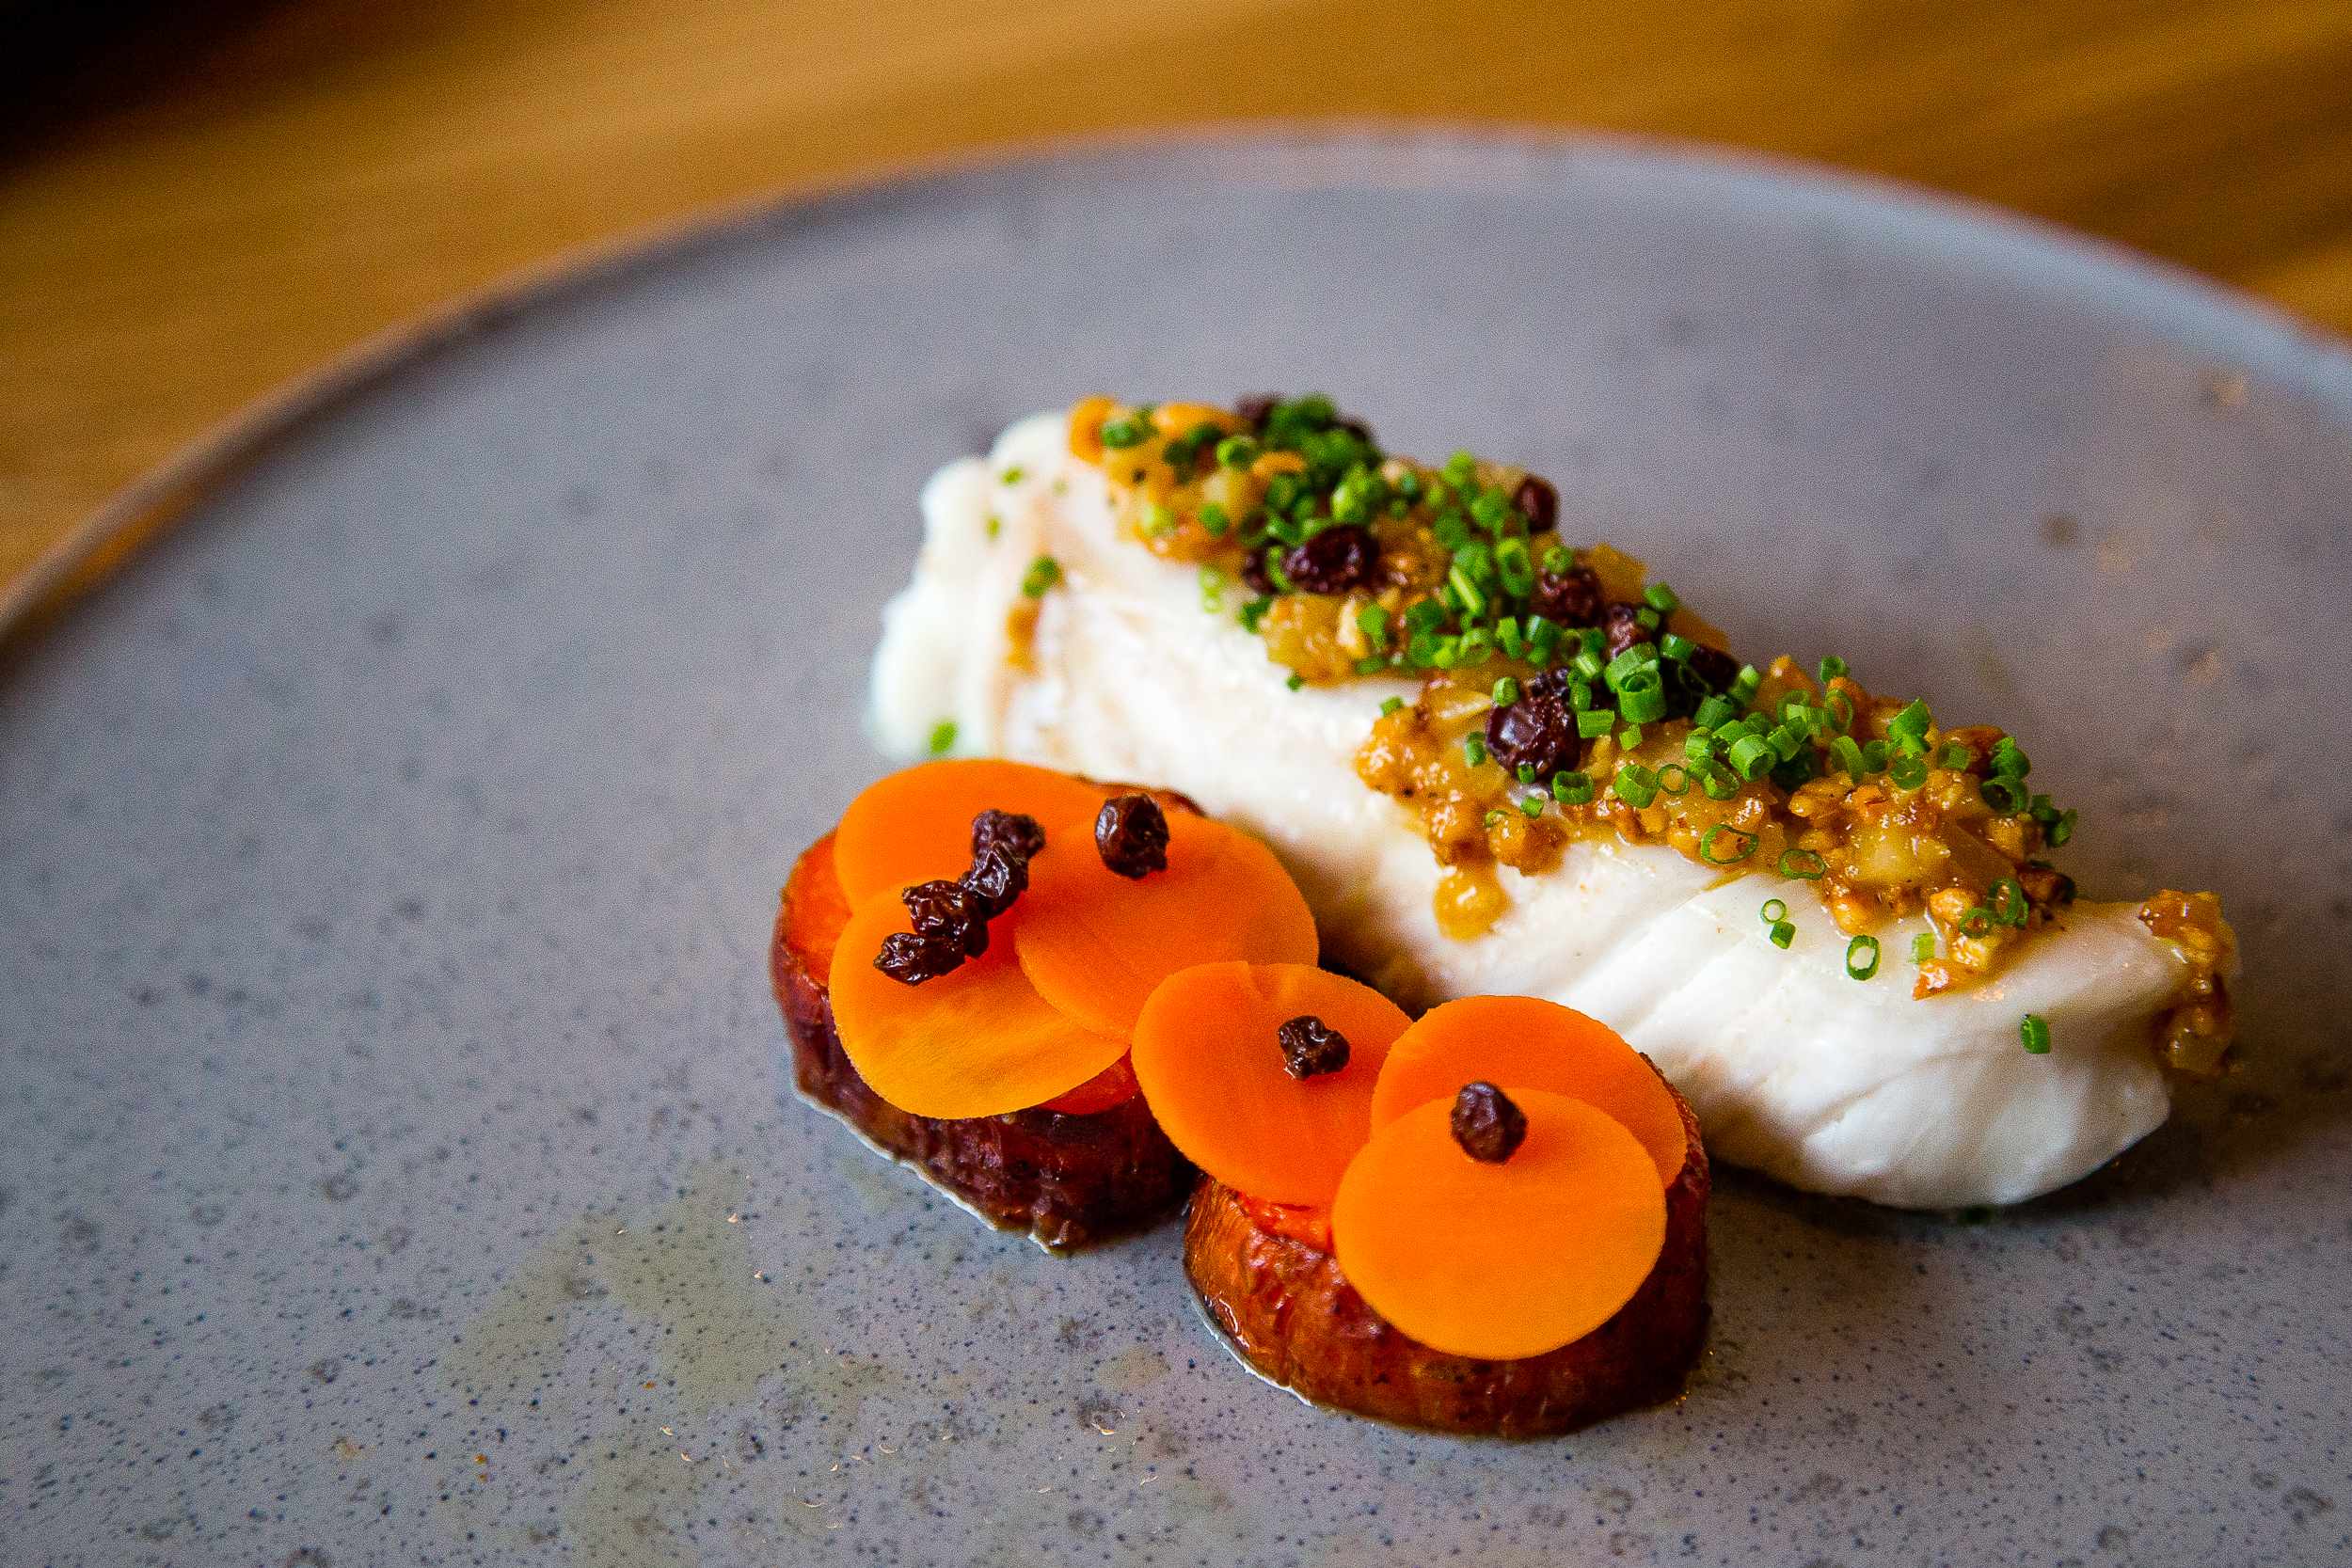 Halibut, hazelnut, corn, roasted carrot, currant raisin